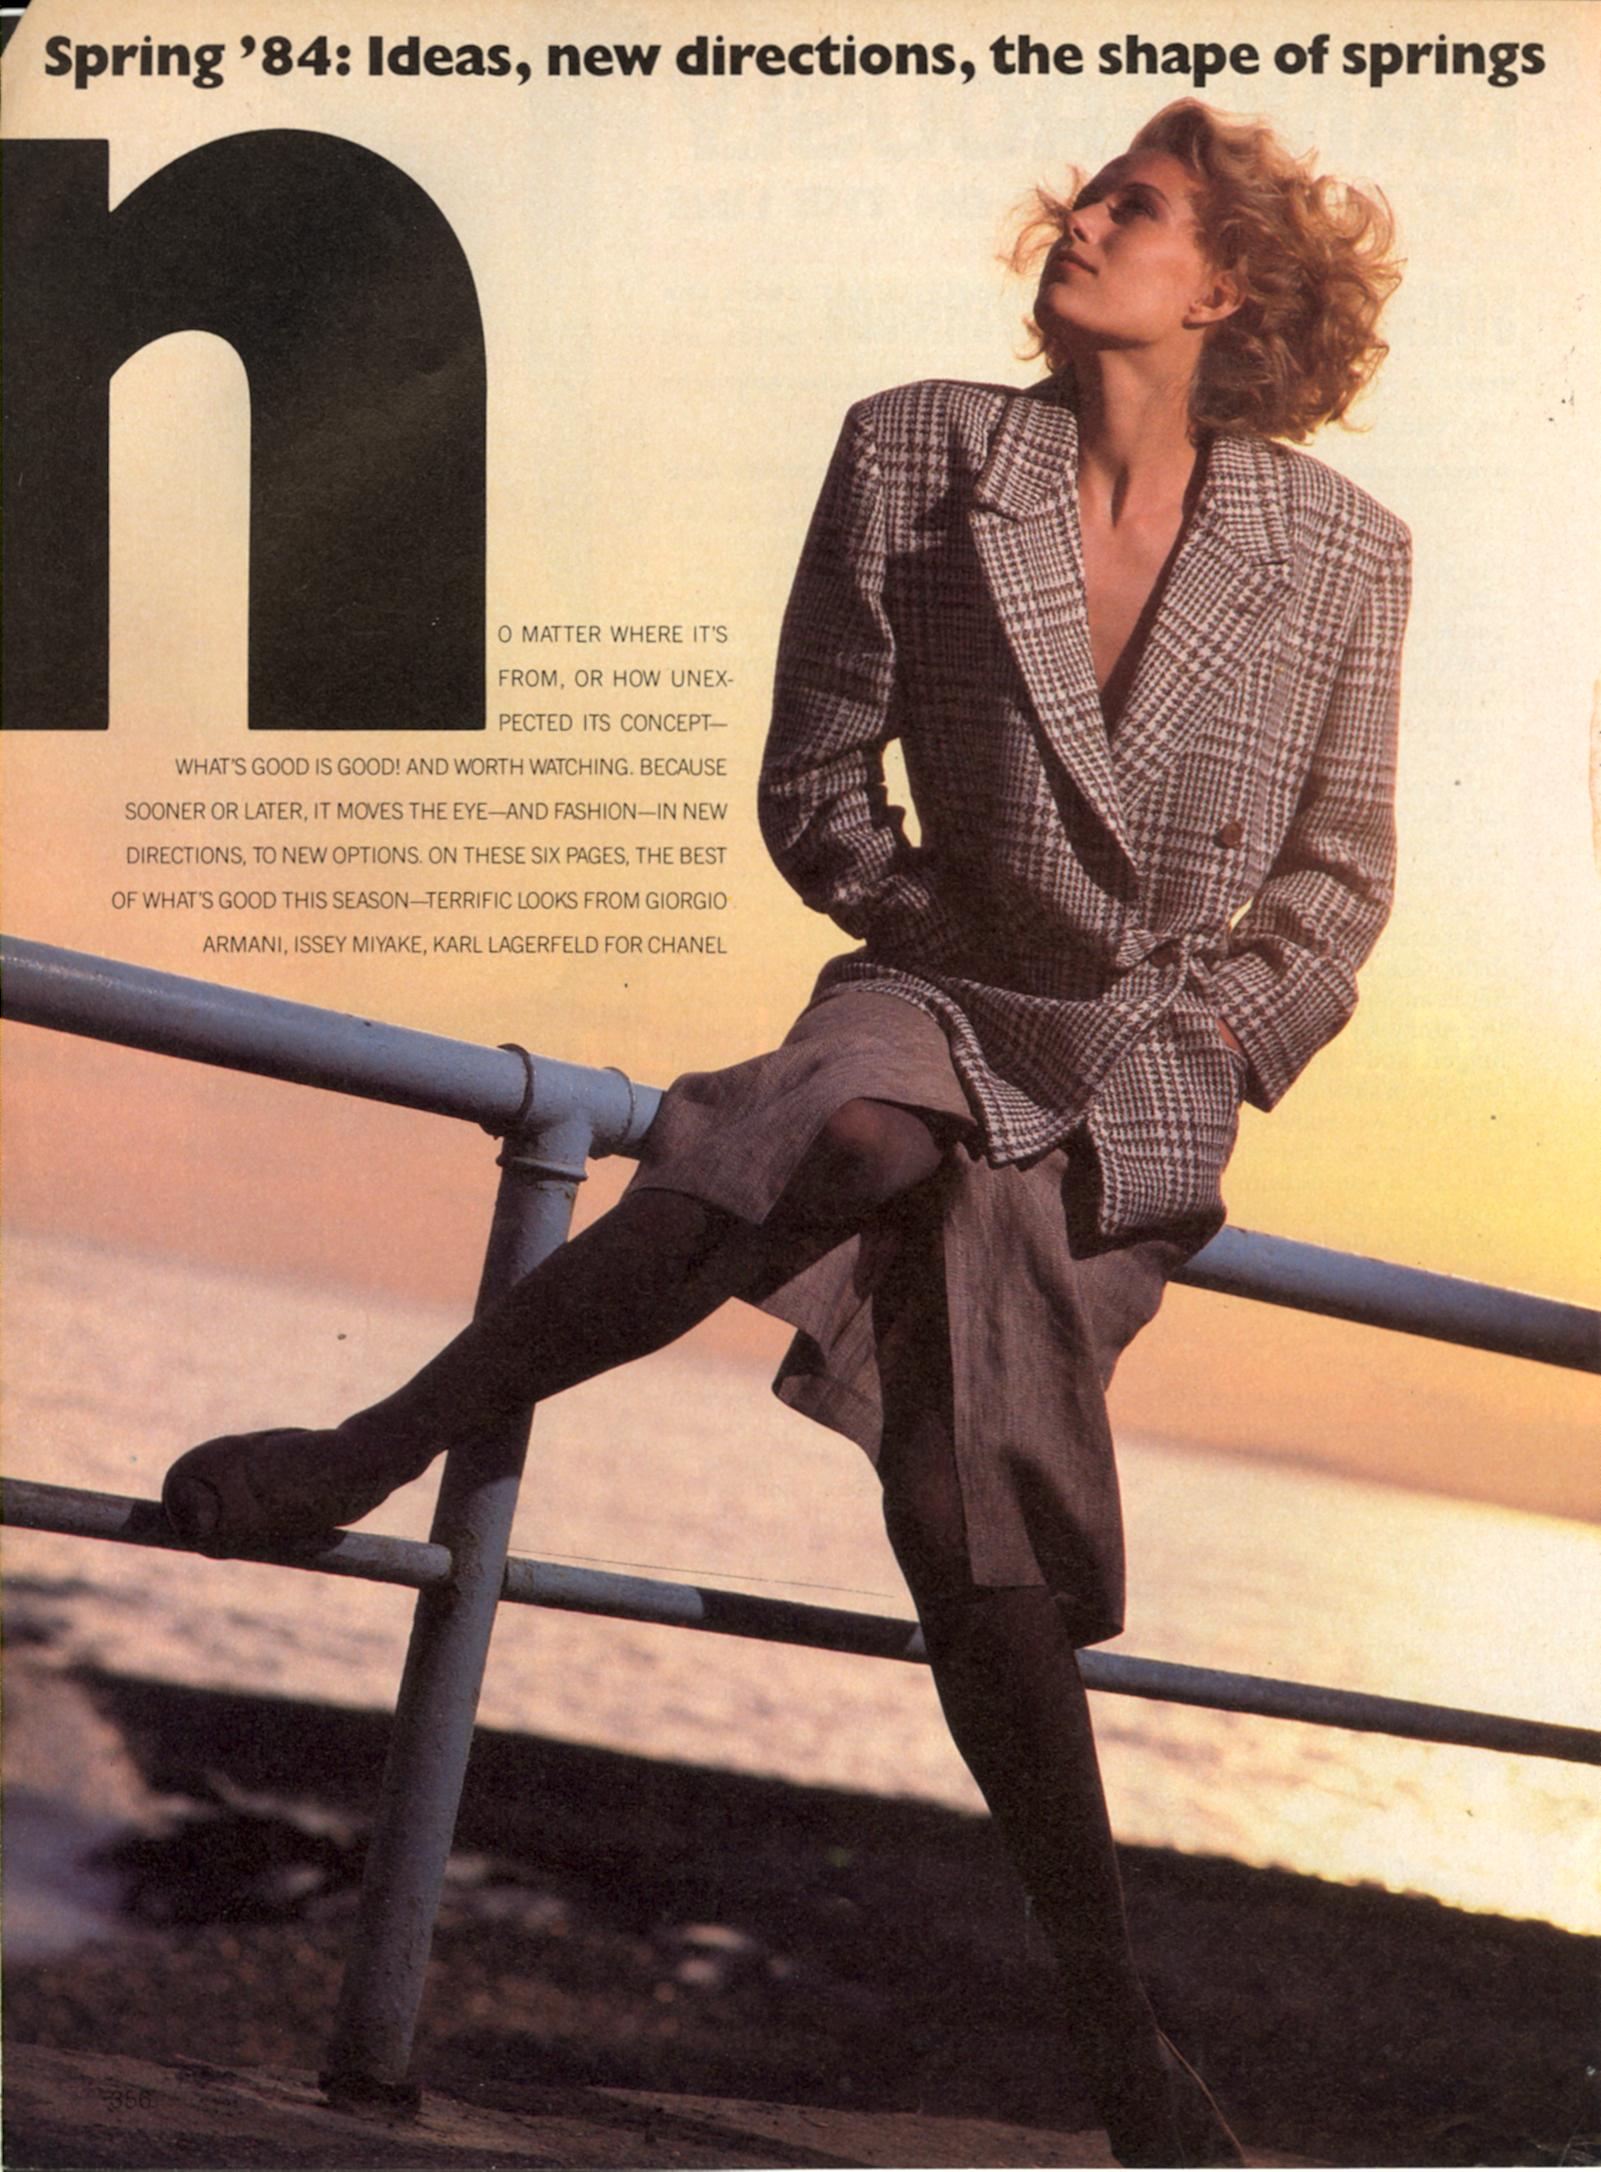 Vogue (US) December 1983 | Spring '84 Ideas 01.jpg